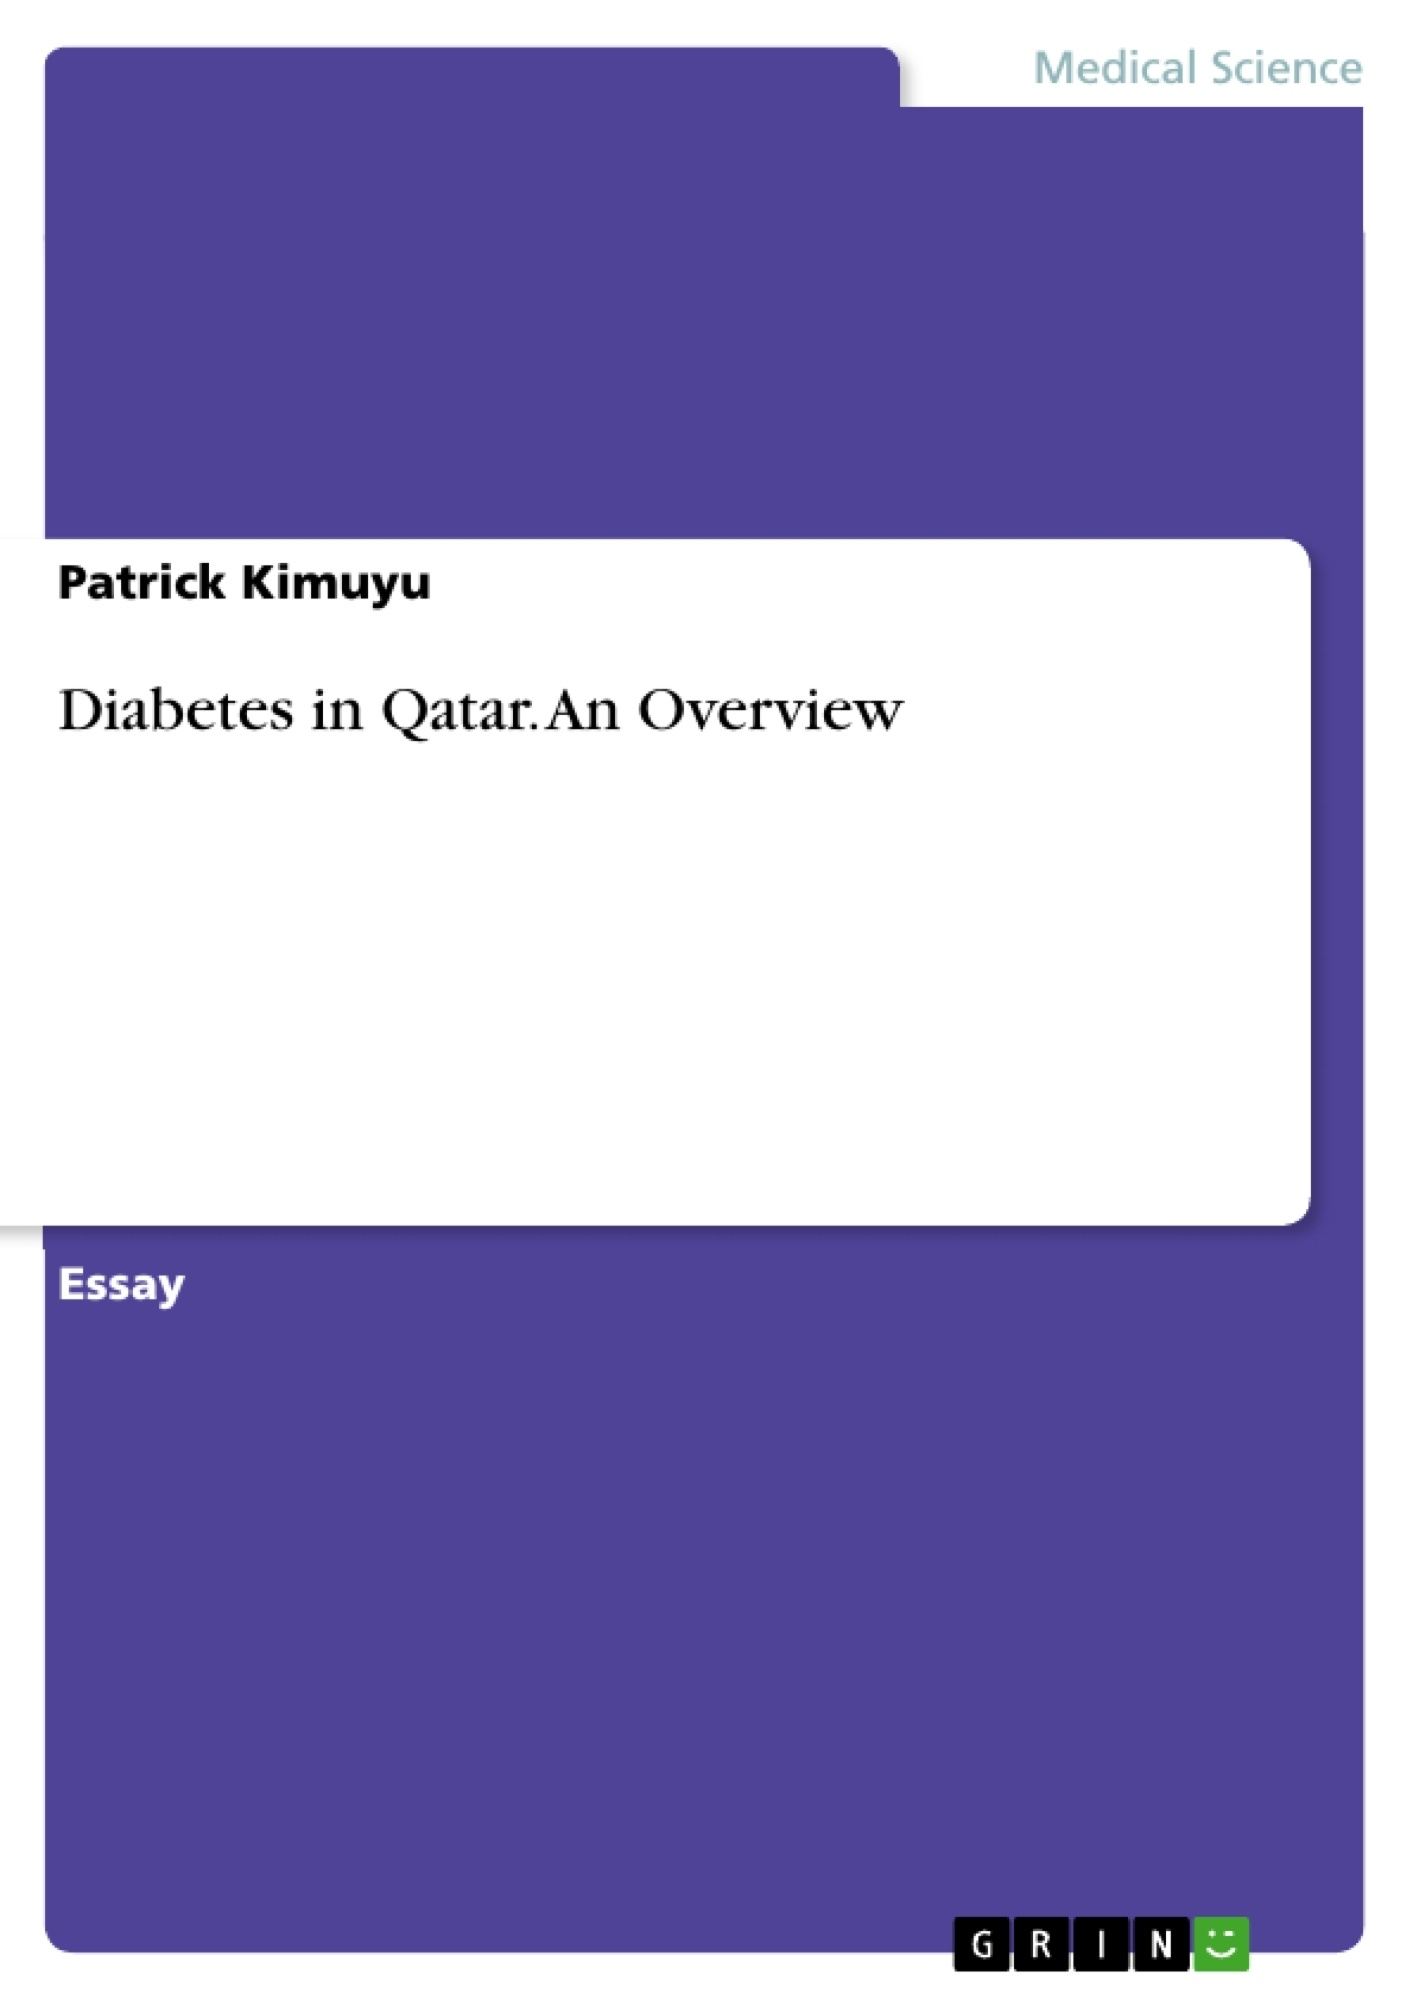 Title: Diabetes in Qatar. An Overview